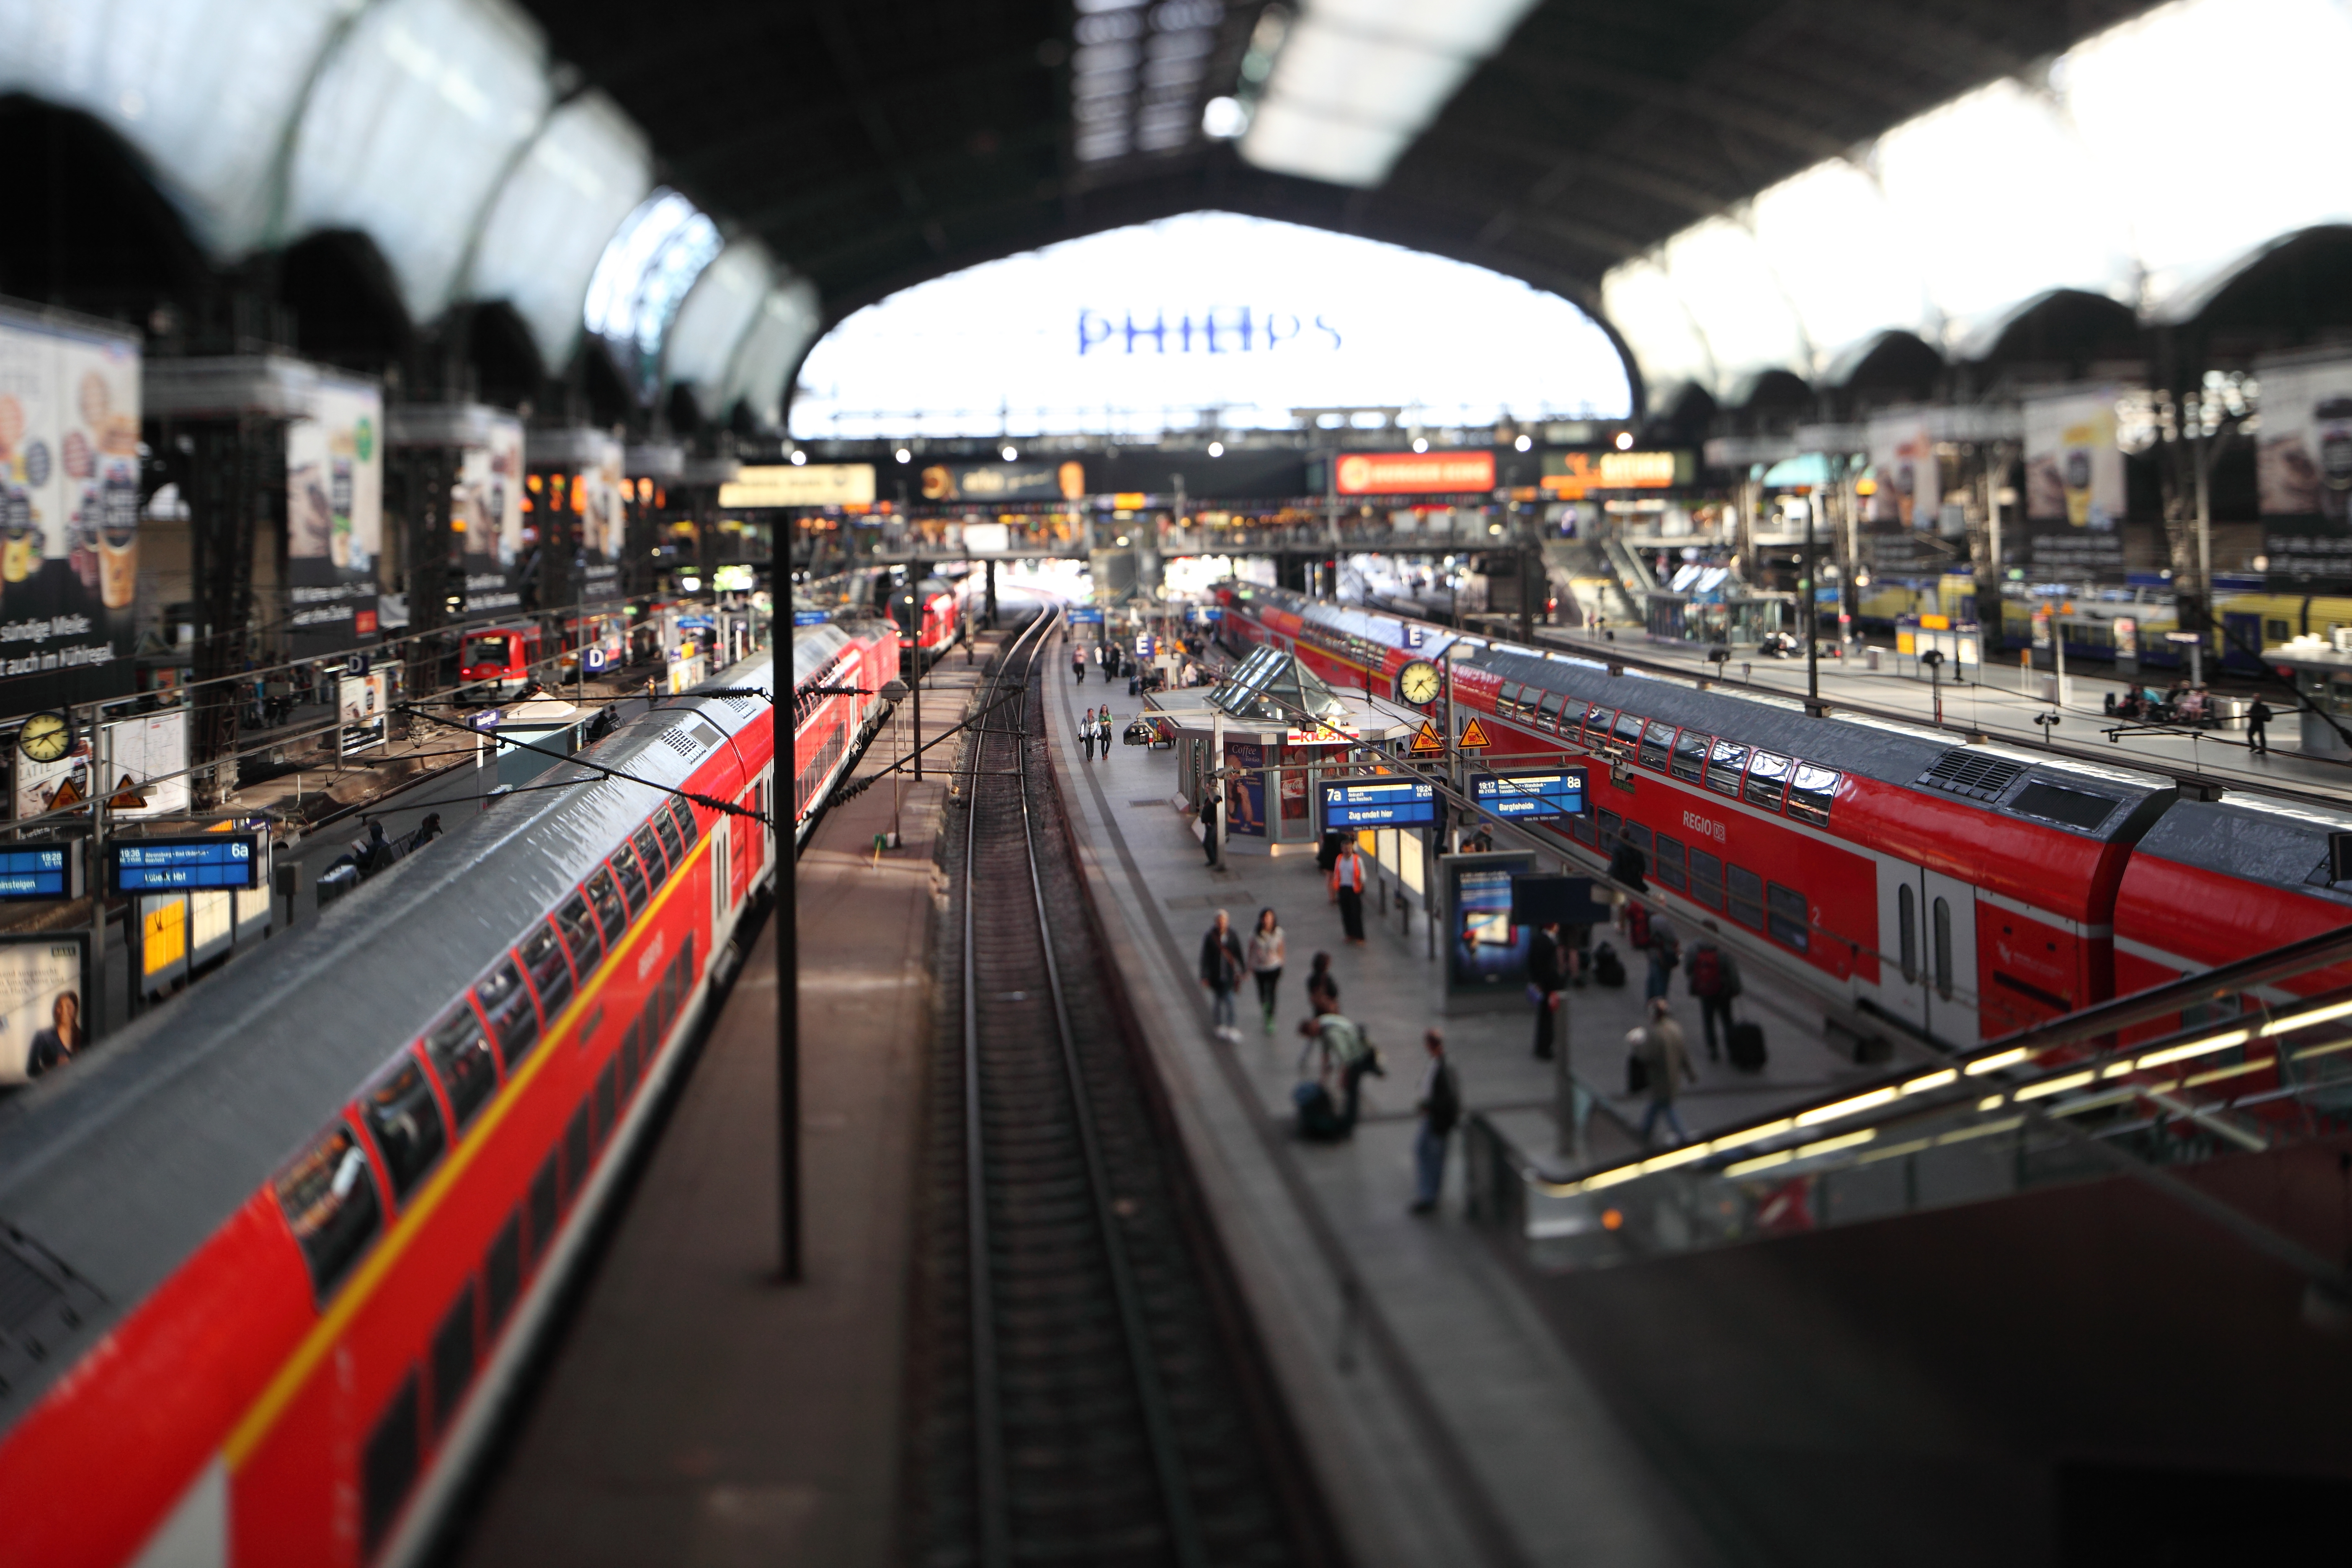 germany trains train stations HD Wallpaper